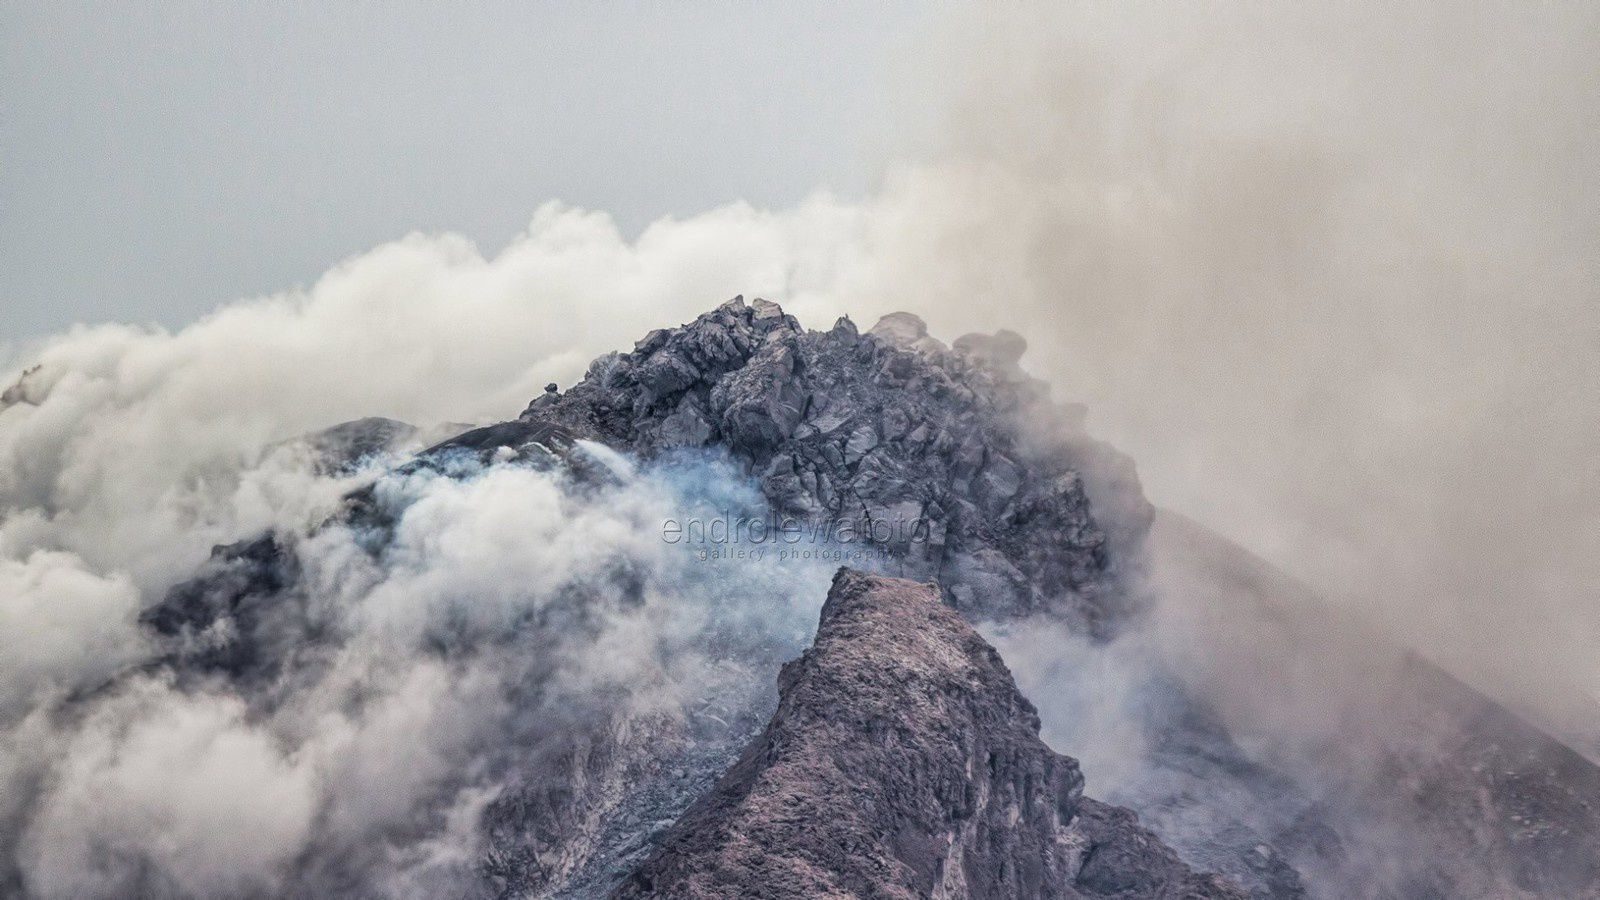 Sinabung - two different views of the lava dome - the 24.10.2017 respectively at 12:26 and 15:21 - photos Endro Lewa